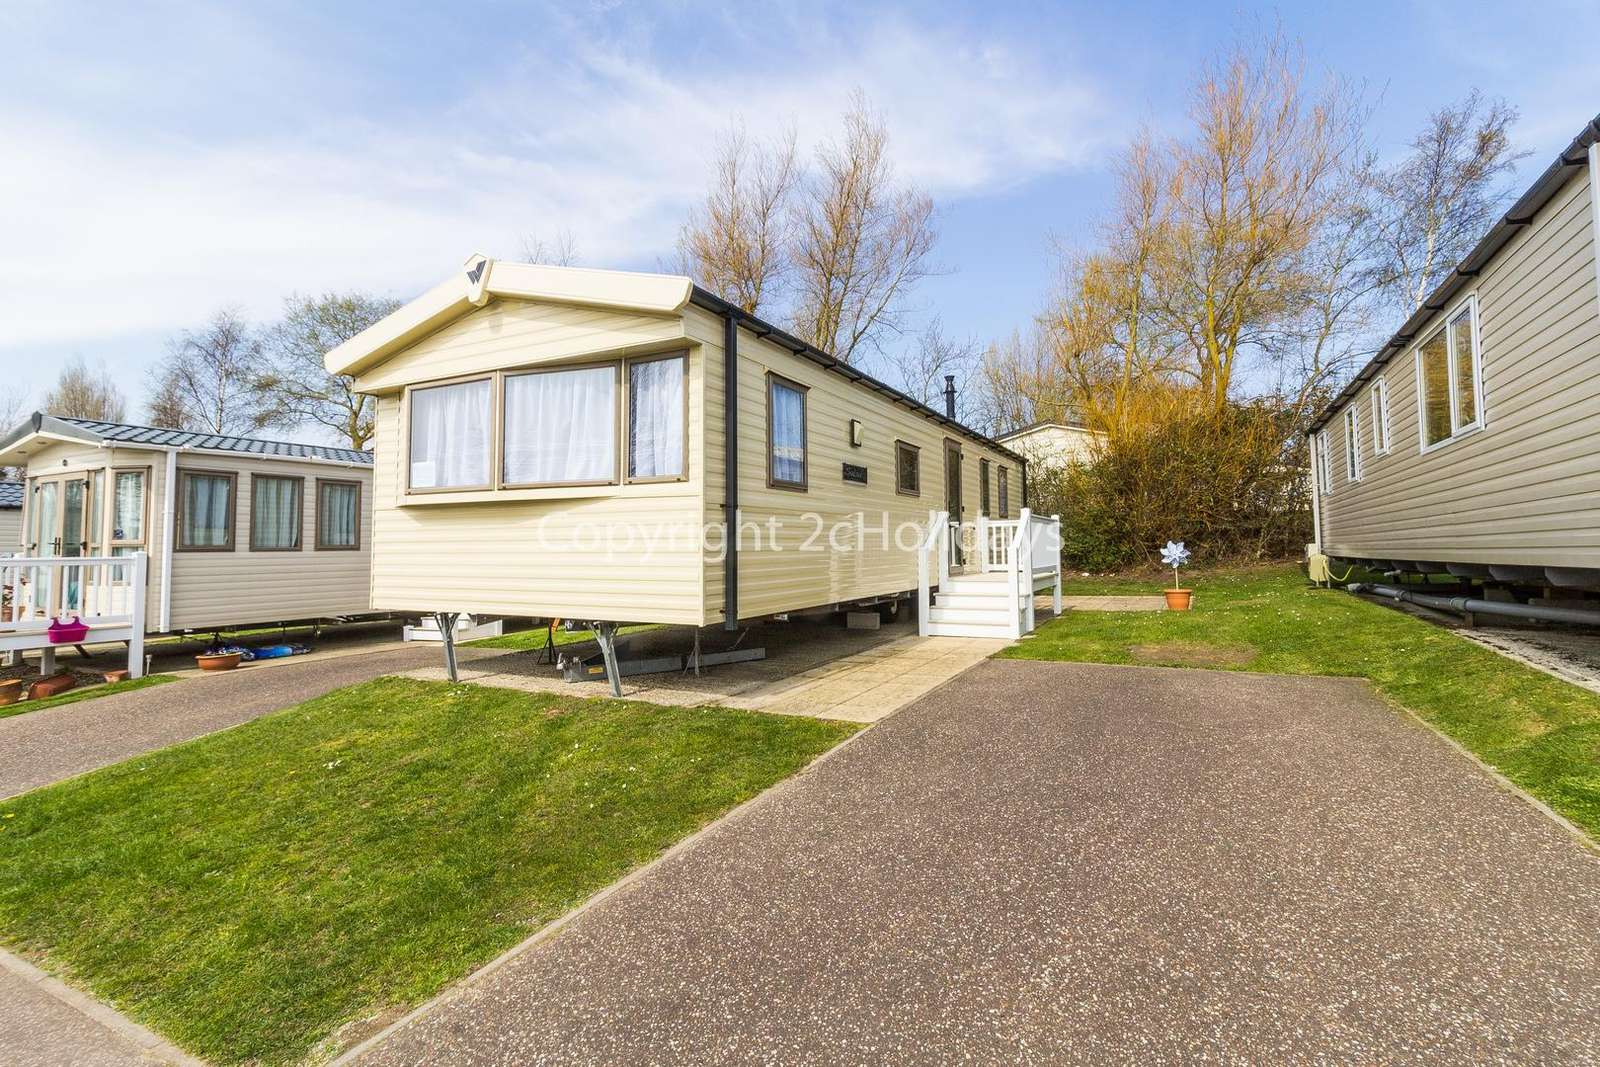 Lovely accommodation with homely touches on a great holiday park!